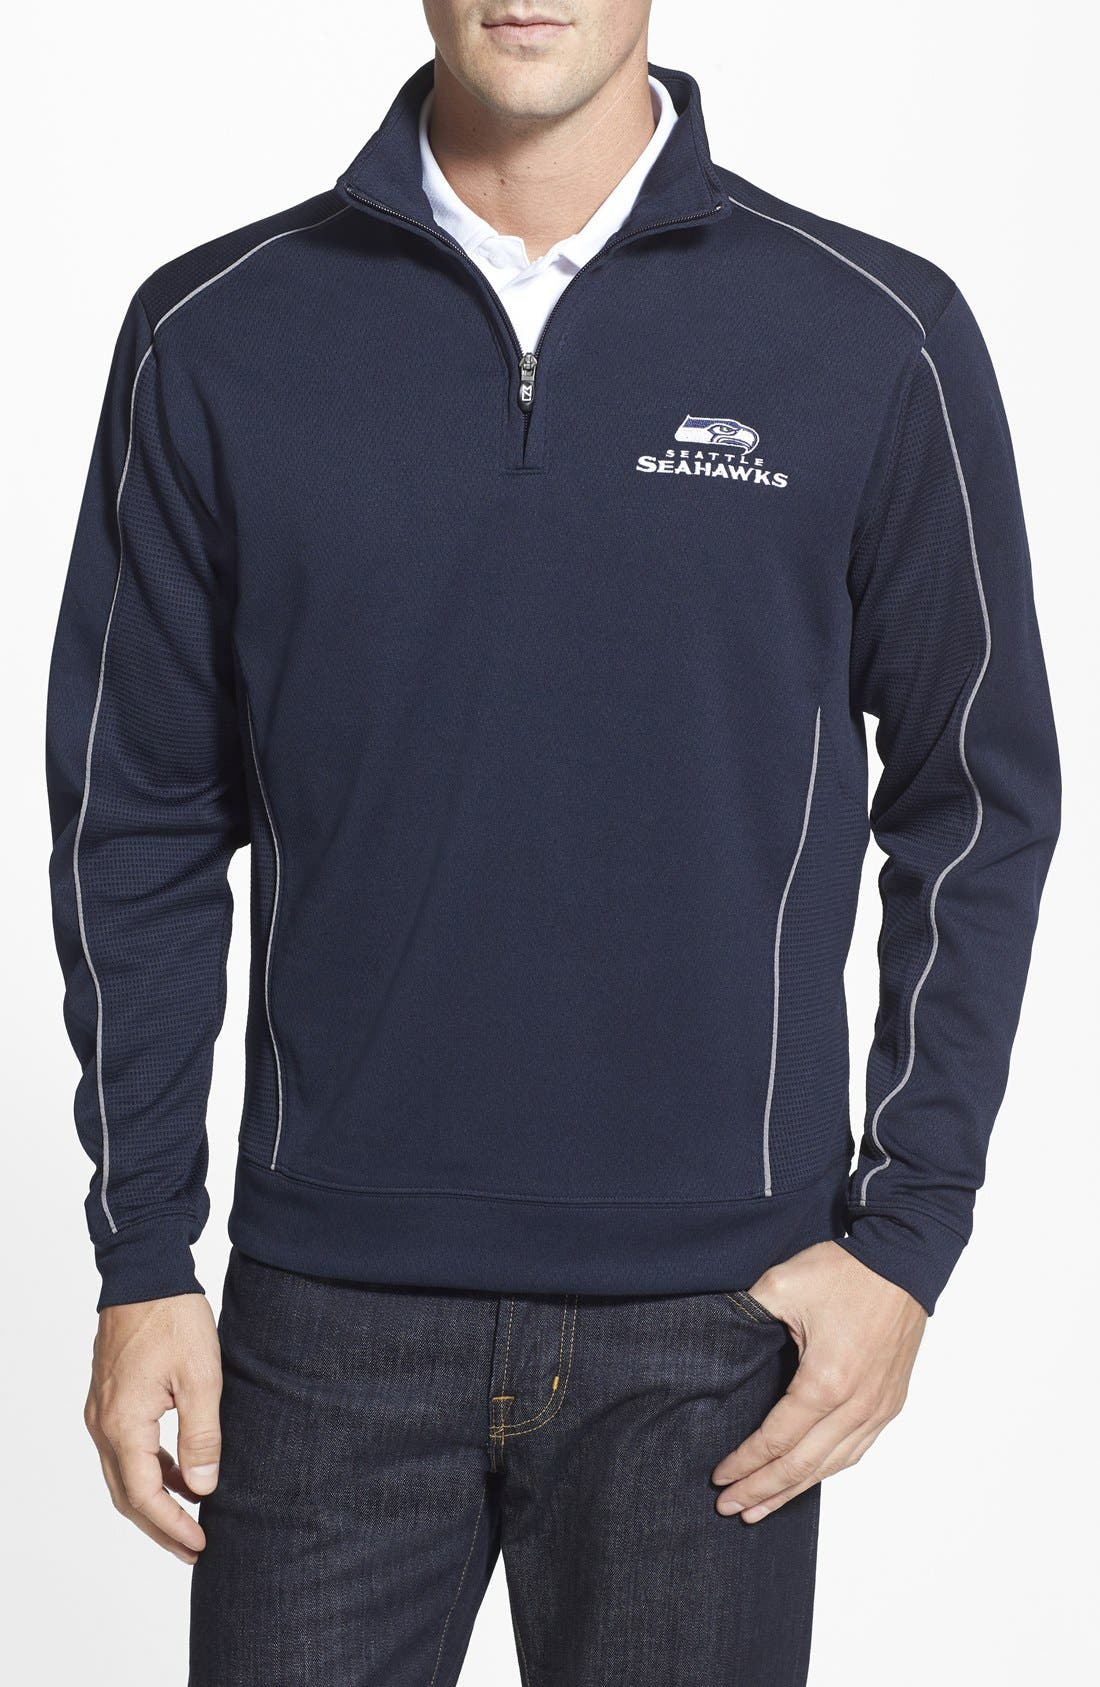 Seattle Seahawks - Edge DryTec Moisture Wicking Half Zip Pullover,                             Main thumbnail 1, color,                             420